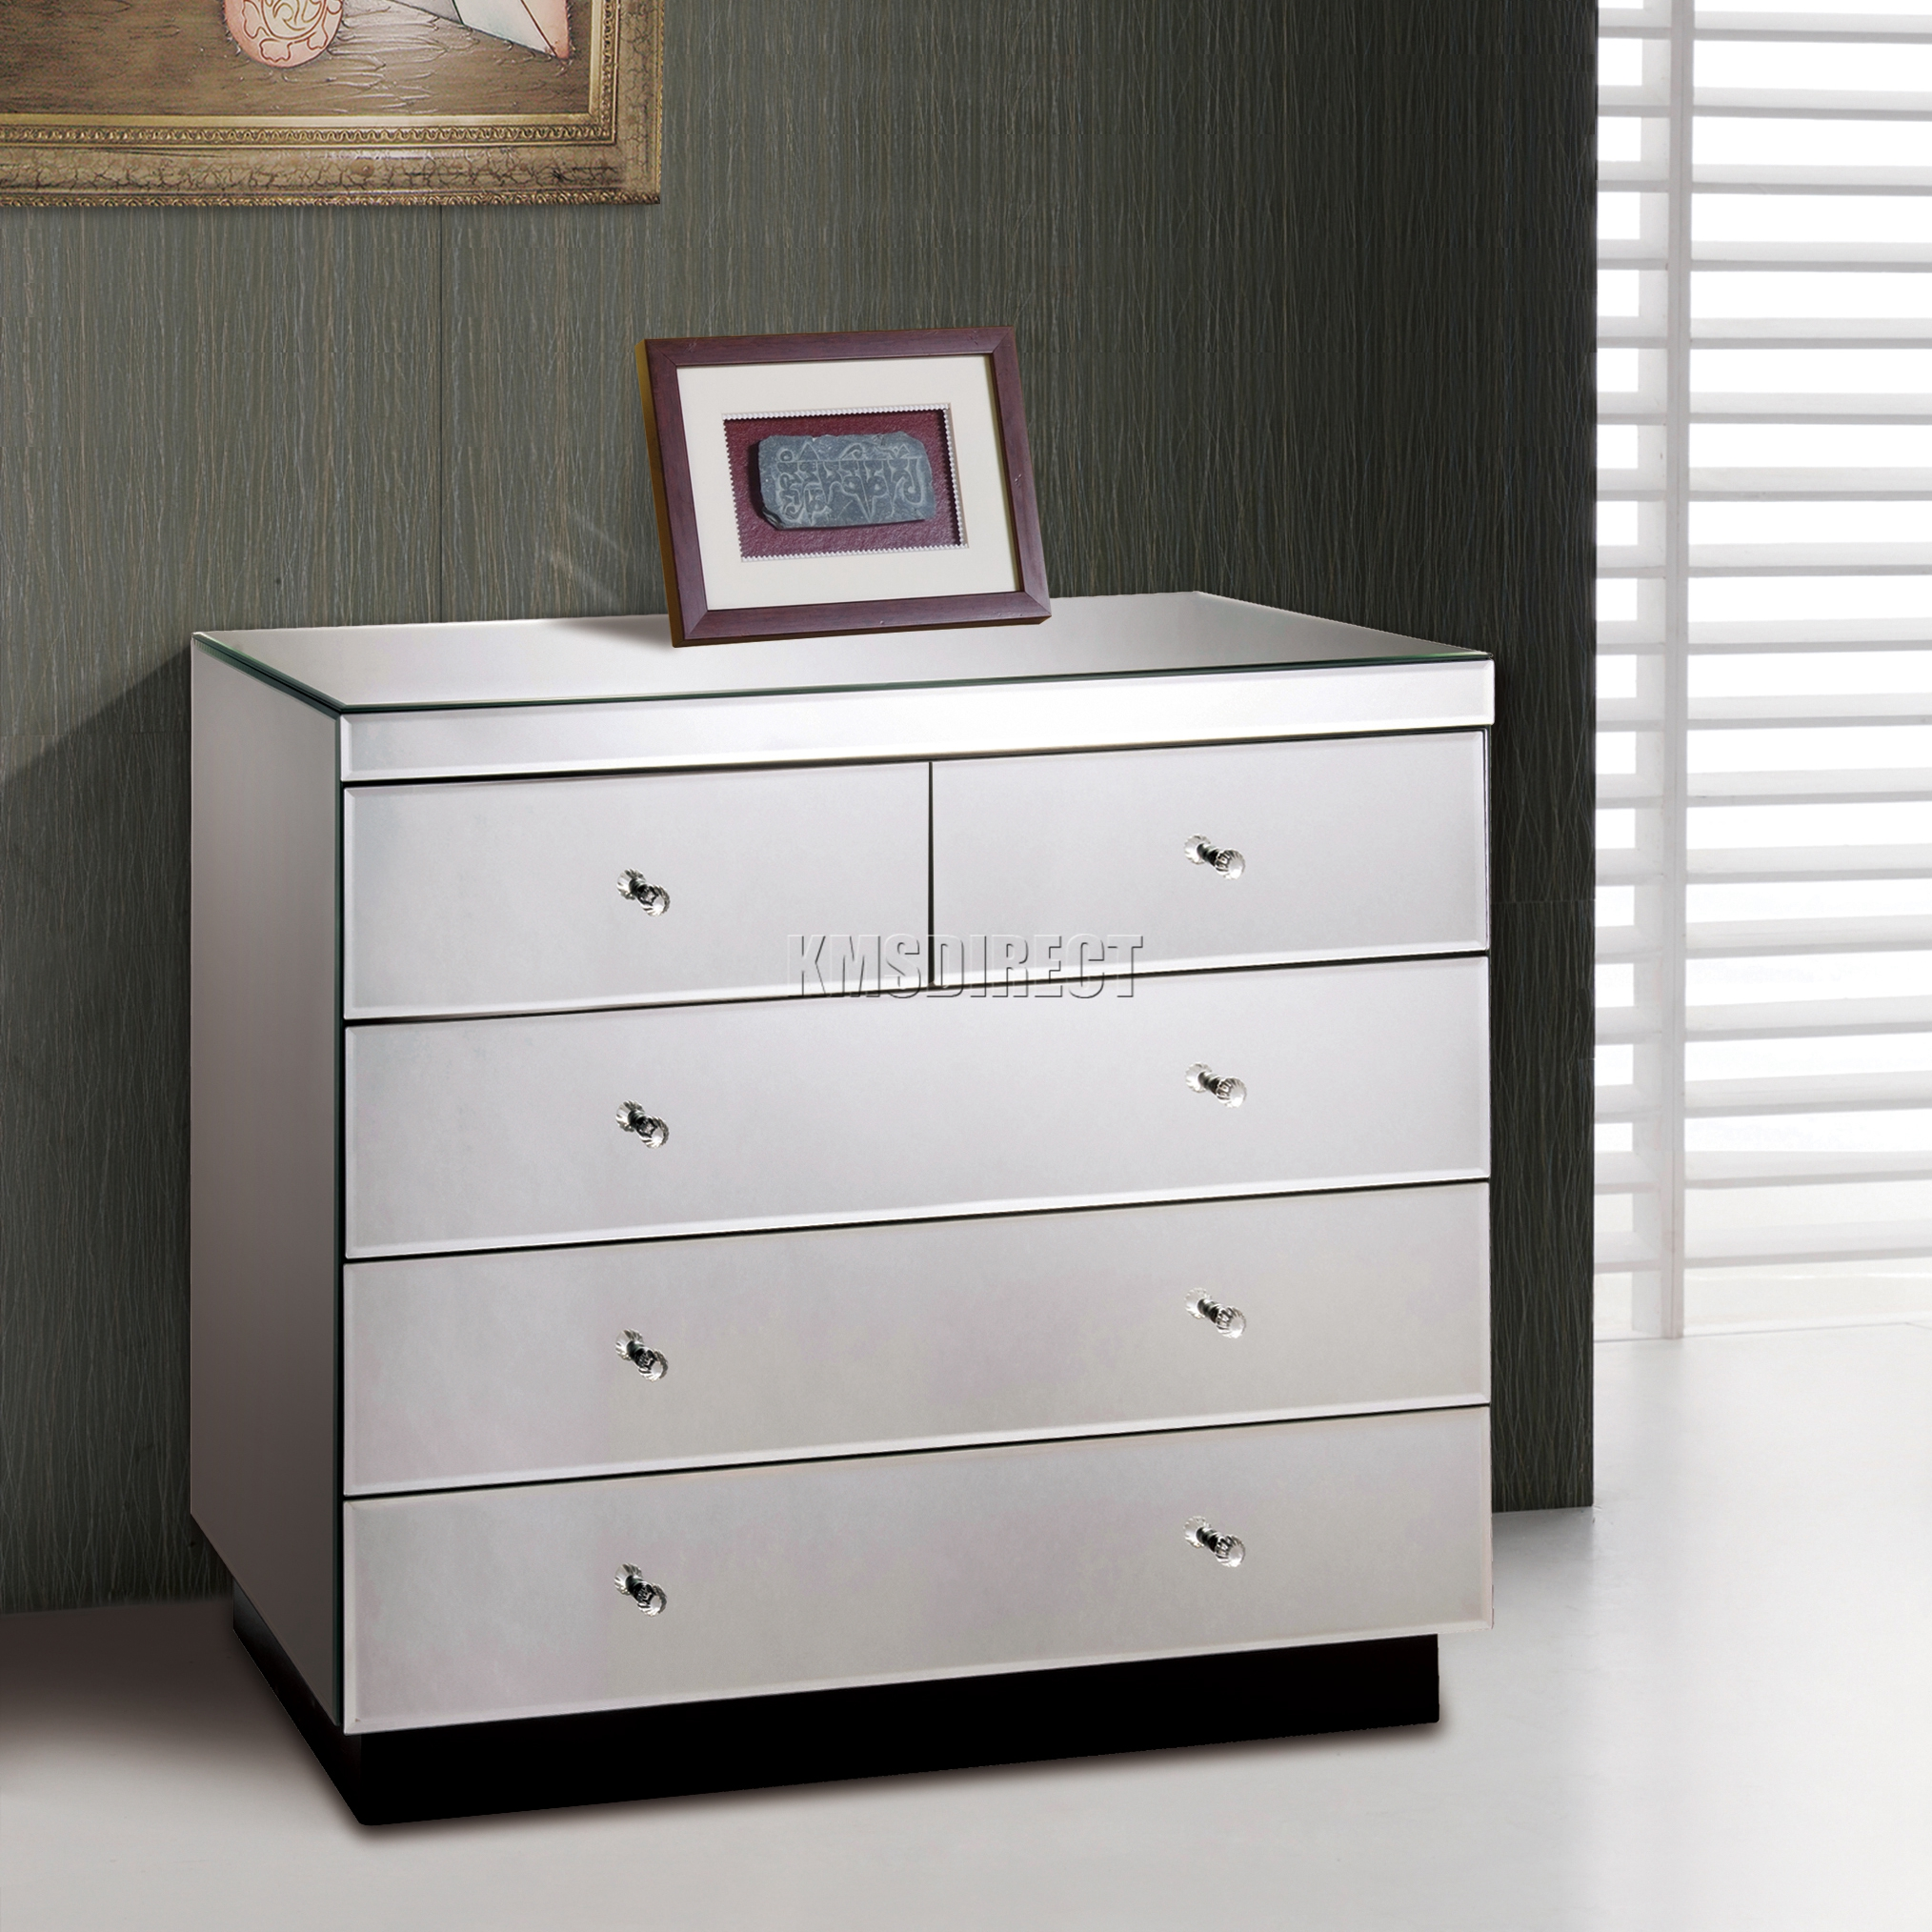 FoxHunter Mirrored Furniture Glass 2 Over 3 Drawer Chest Cabinet Bedroom MC03